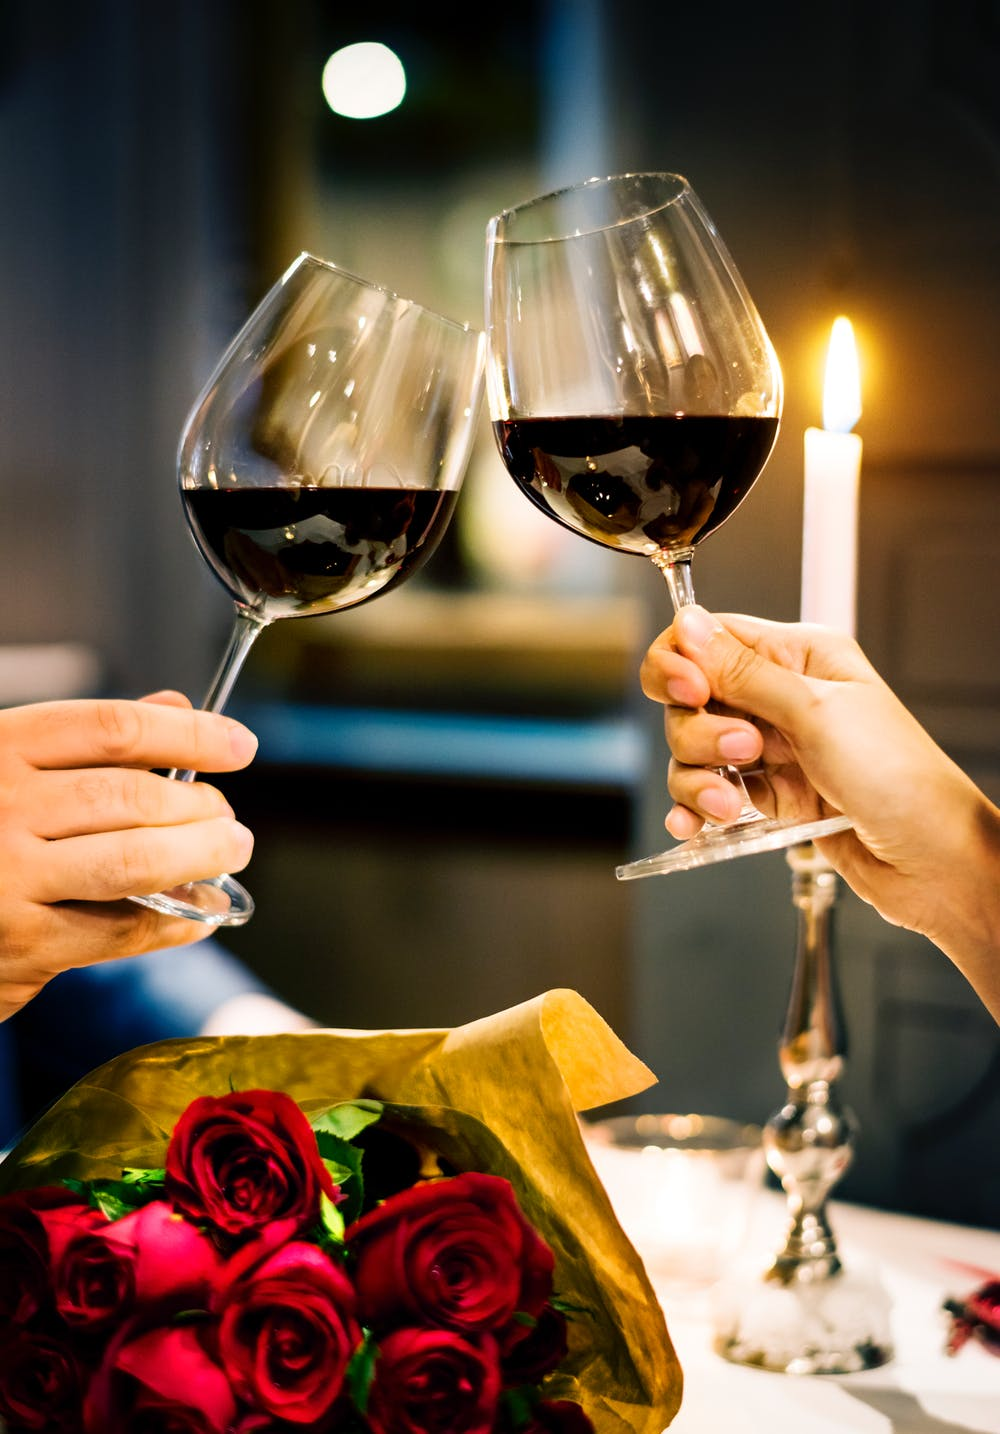 A good romantic day will not be complete without a good dinner